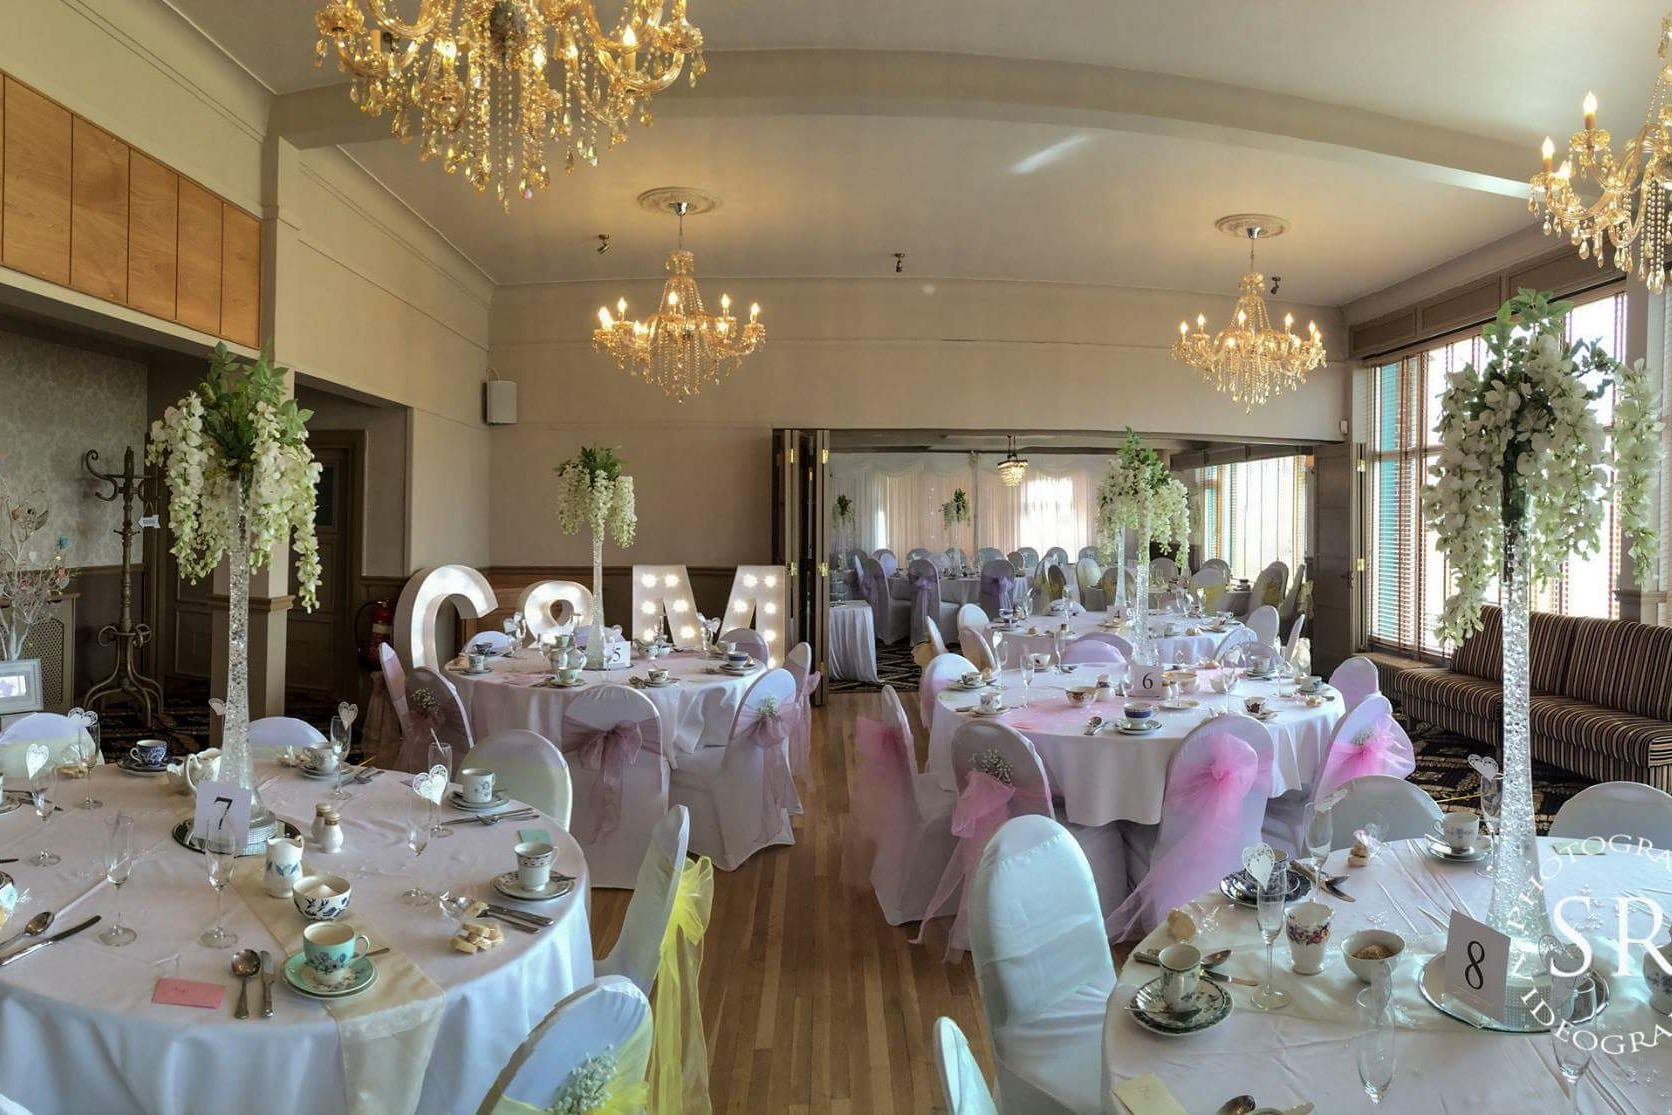 The lounge dressed for a wedding